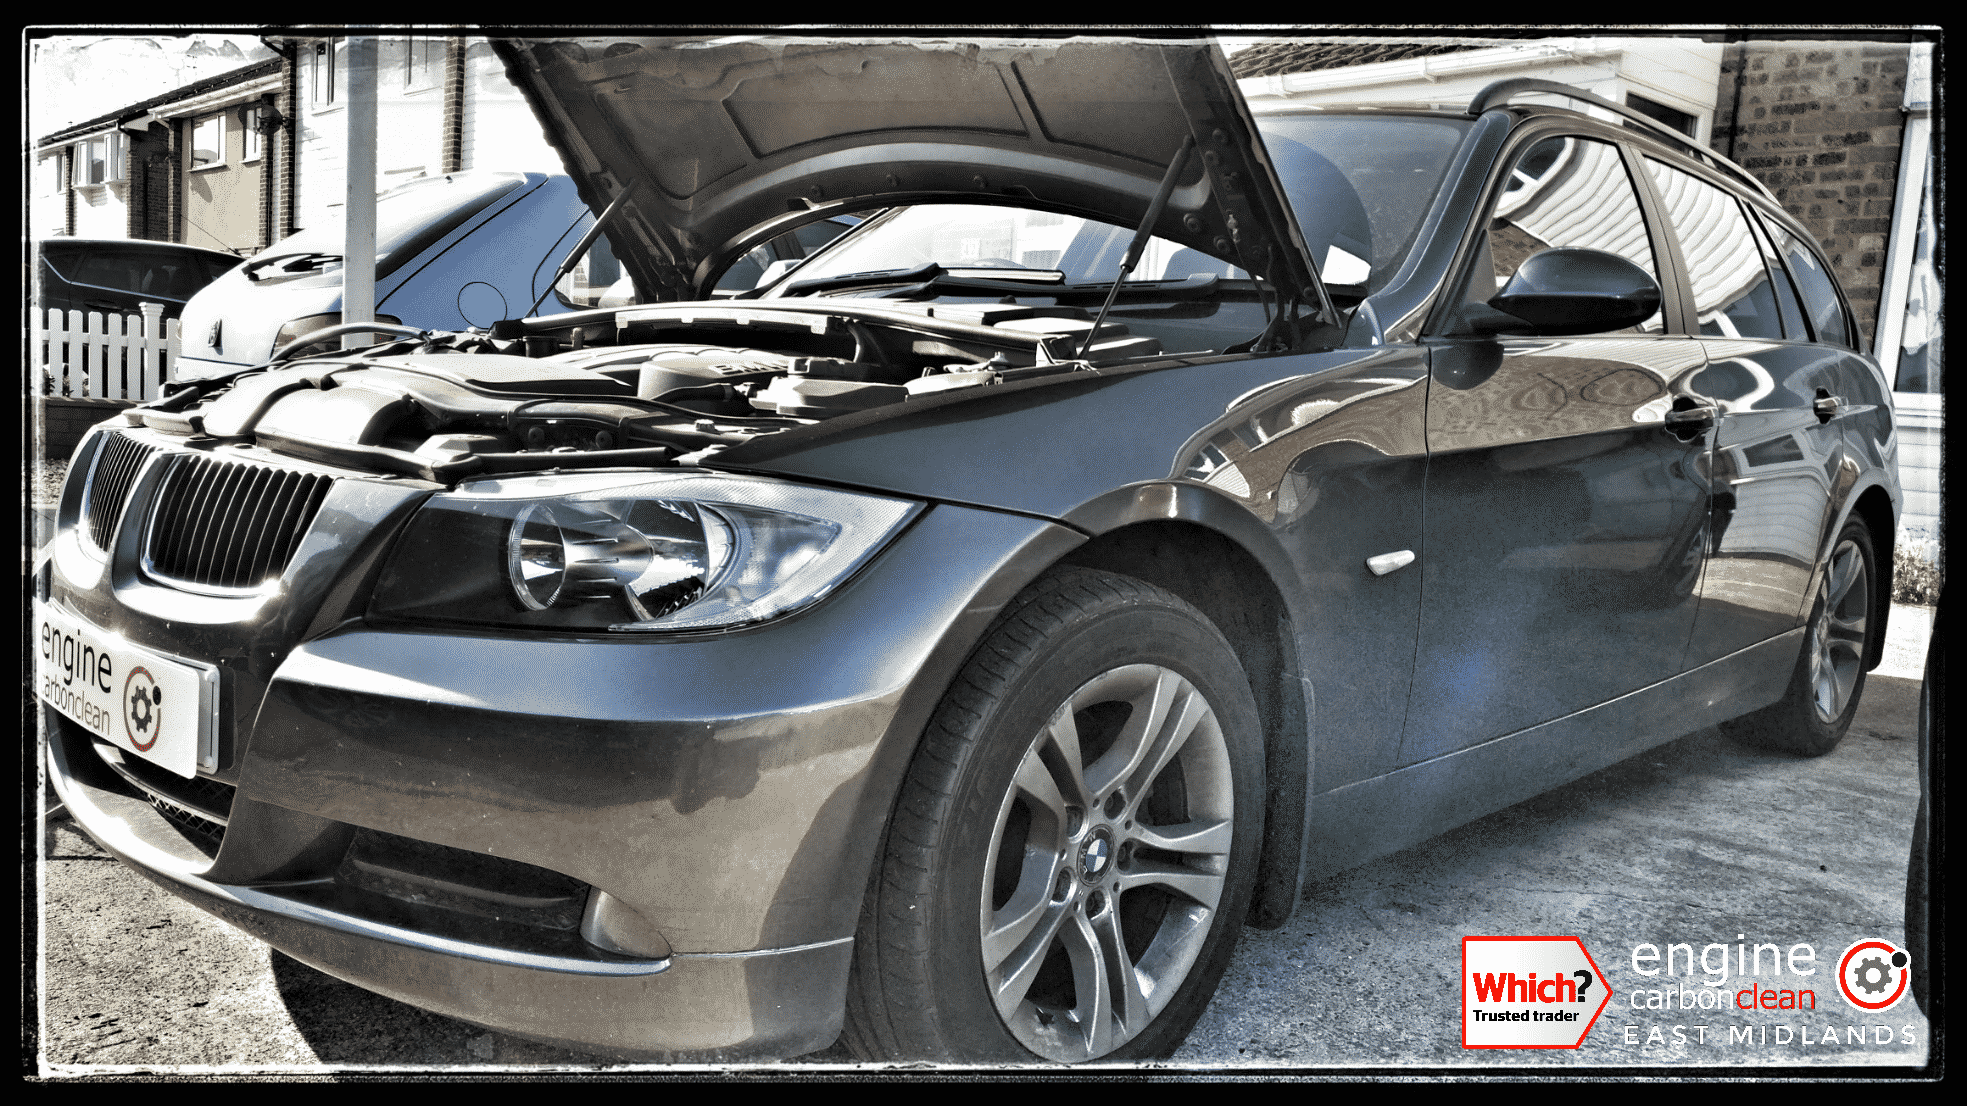 Engine Carbon Clean on a BMW 320d (2008 - 111,831 miles)